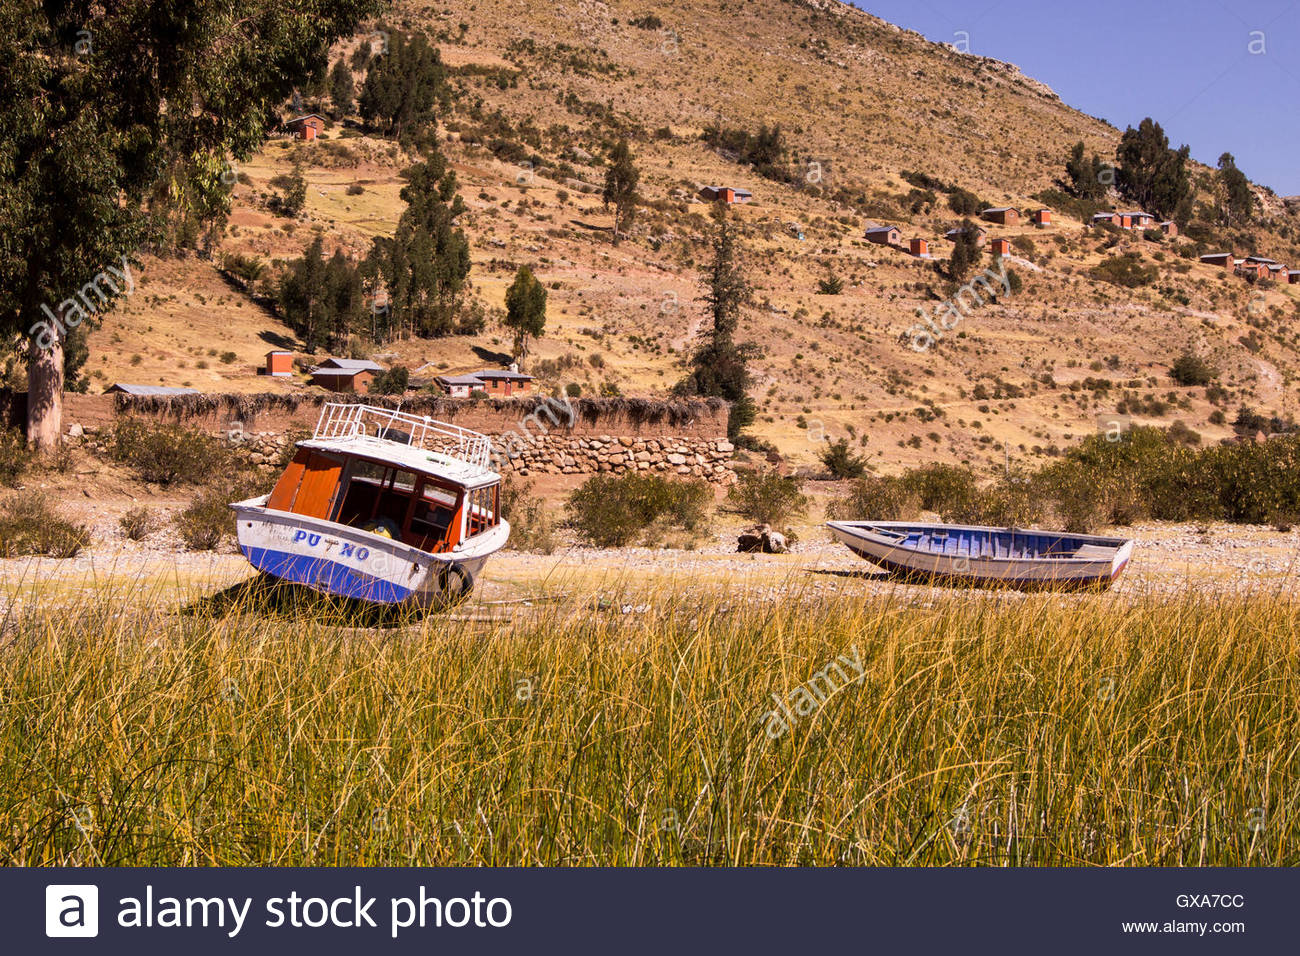 Two aground boats on a shore of Lake Titicaca, Puno, Peru - Stock Image